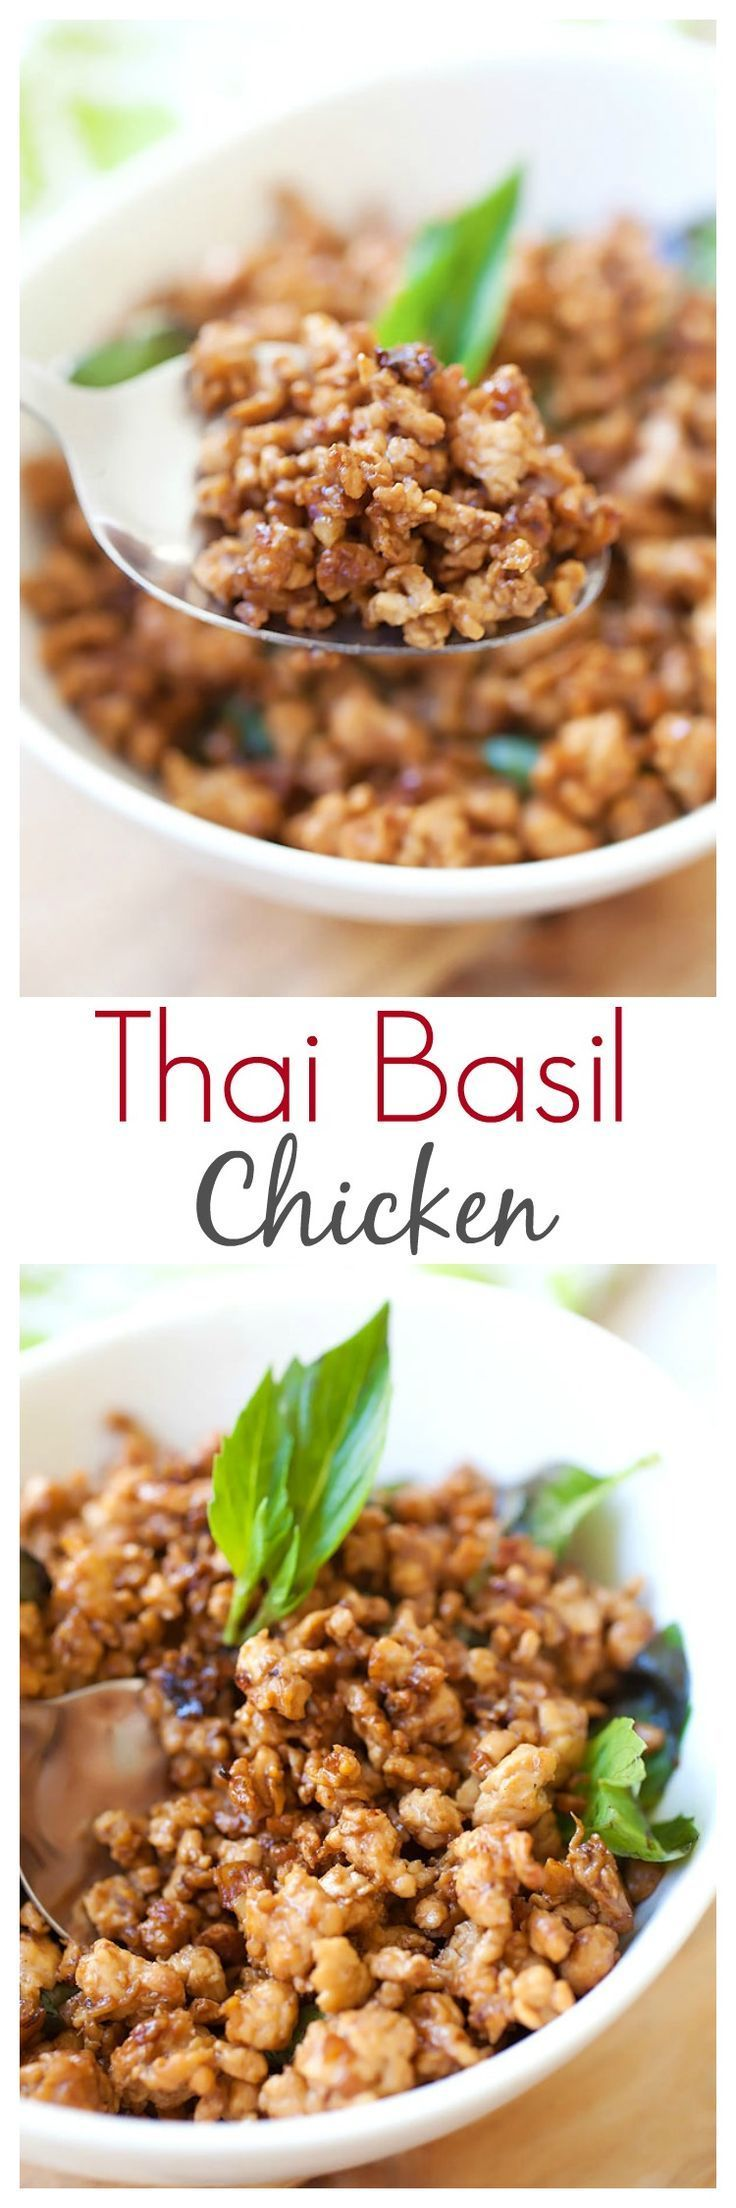 Thai Basil Chicken – made with ground chicken, basil leaves, and chilies. Basil chicken is great with rice and this recipe is super easy and authentic | http://rasamalaysia.com